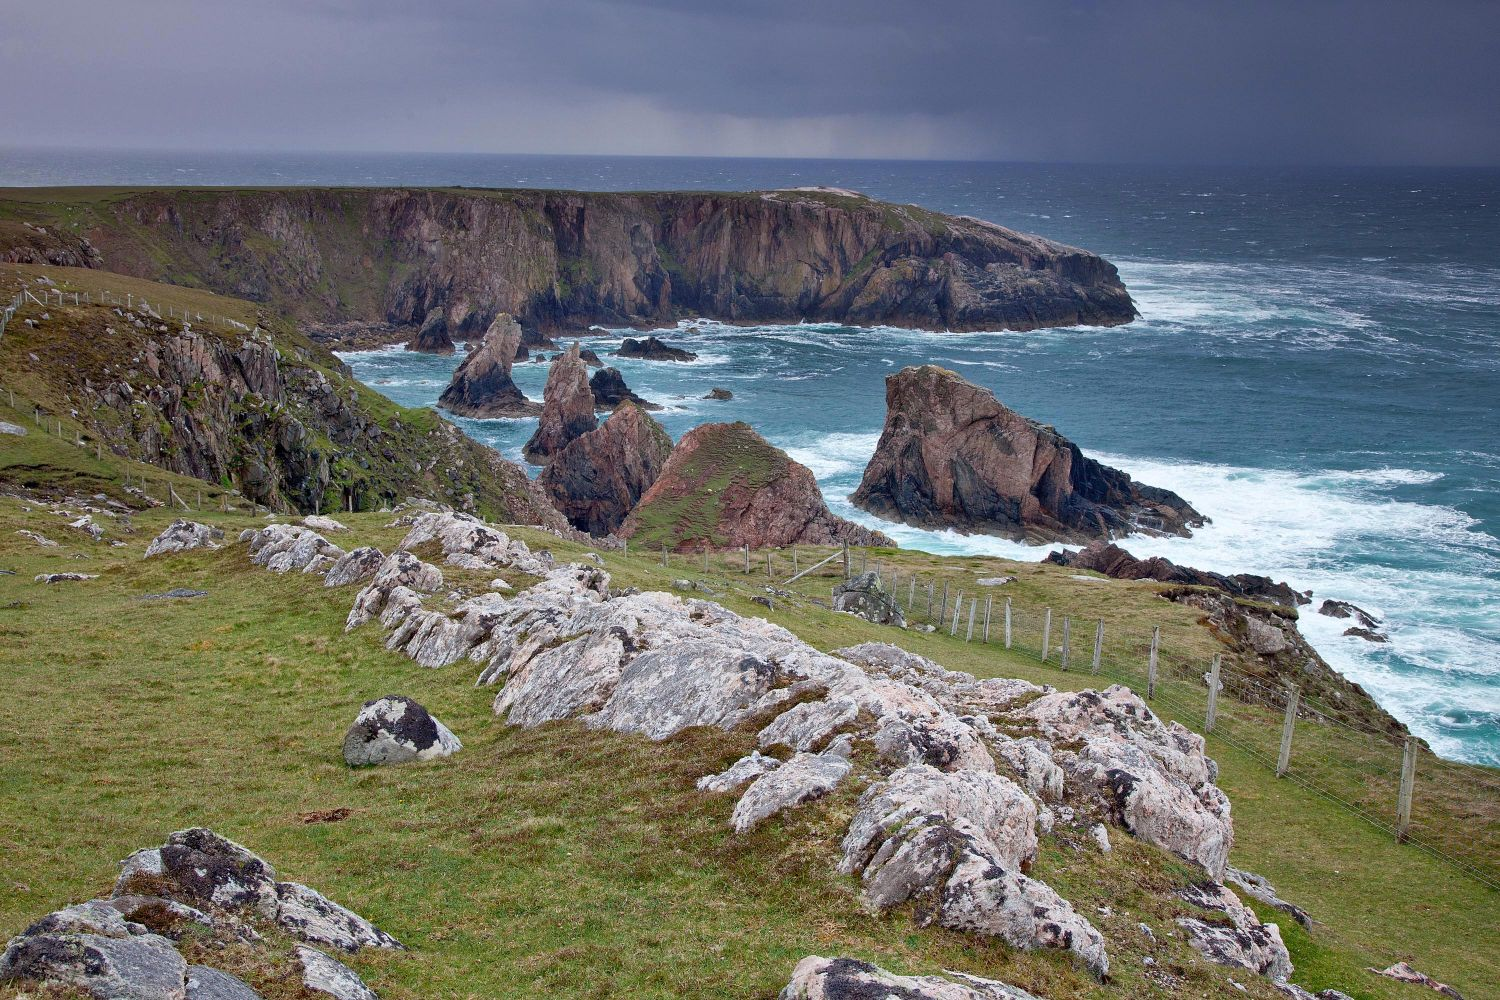 The seastacks of Aird Fenish, Isle of Lewis